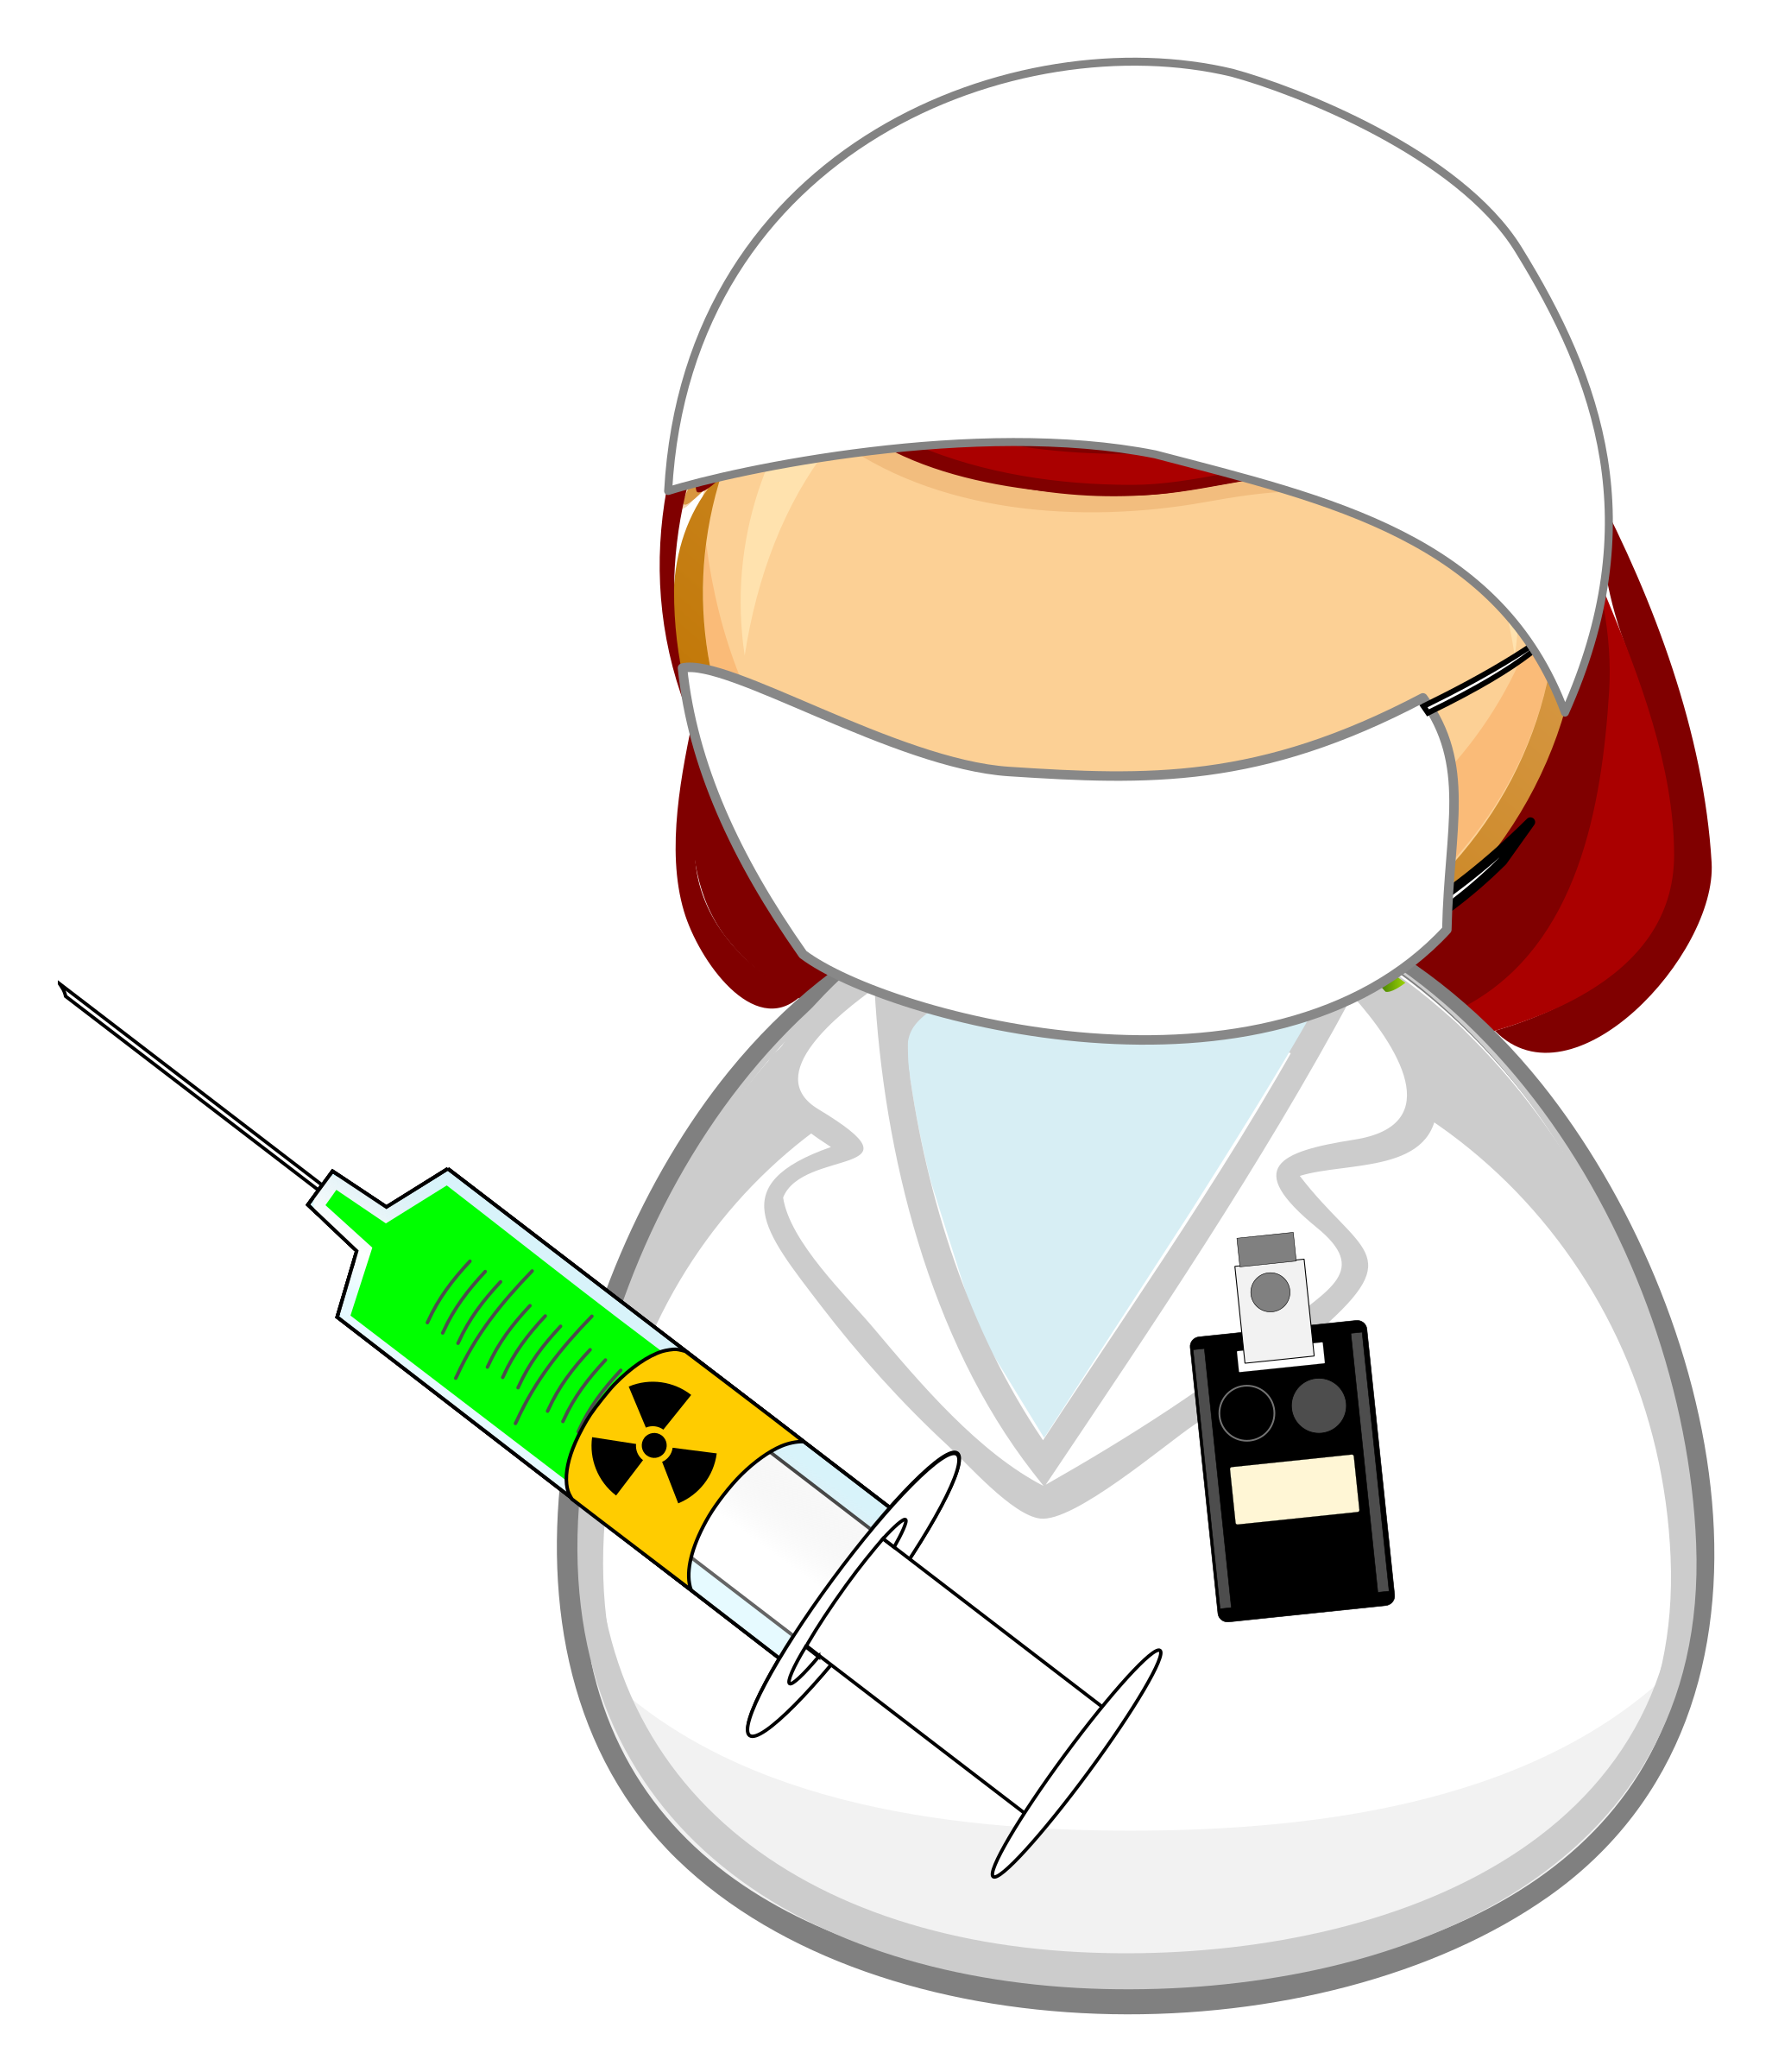 Nuclear medicine worker by Juhele